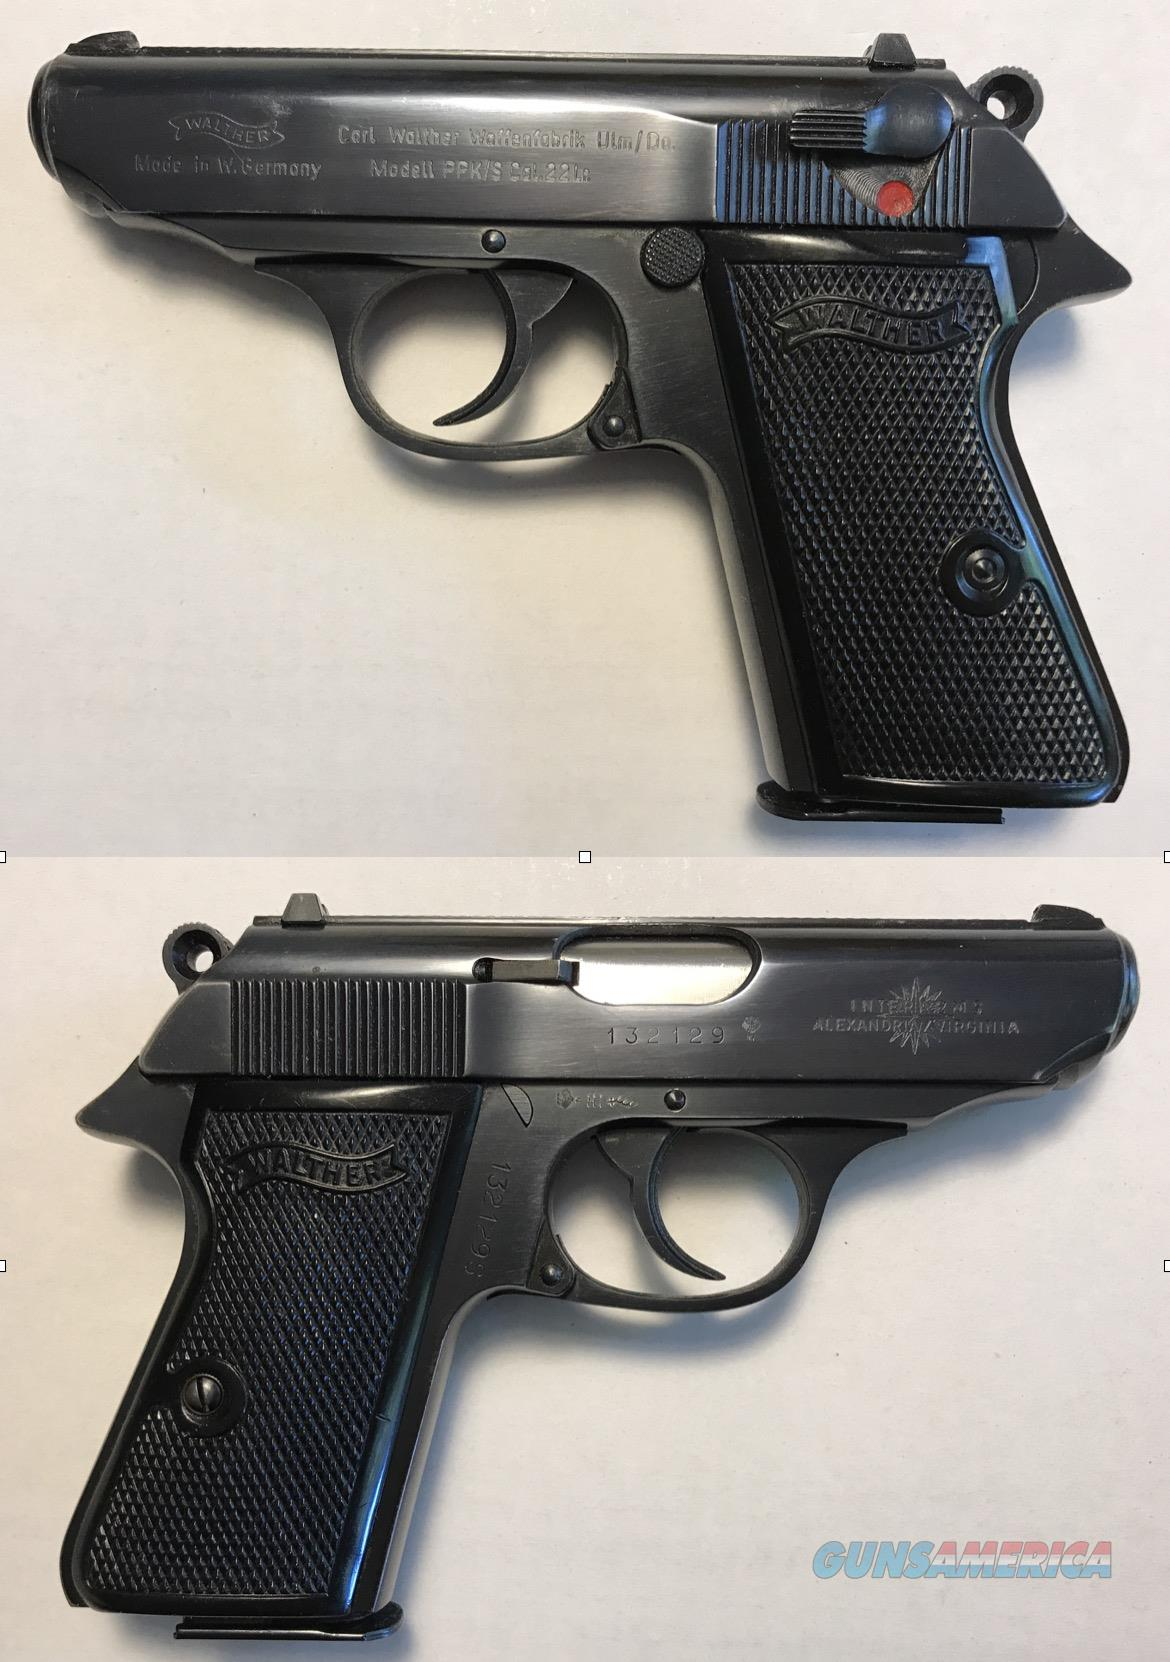 German Walther PPK/S . 22LR  Guns > Pistols > Walther Pistols > Post WWII > PPK Series